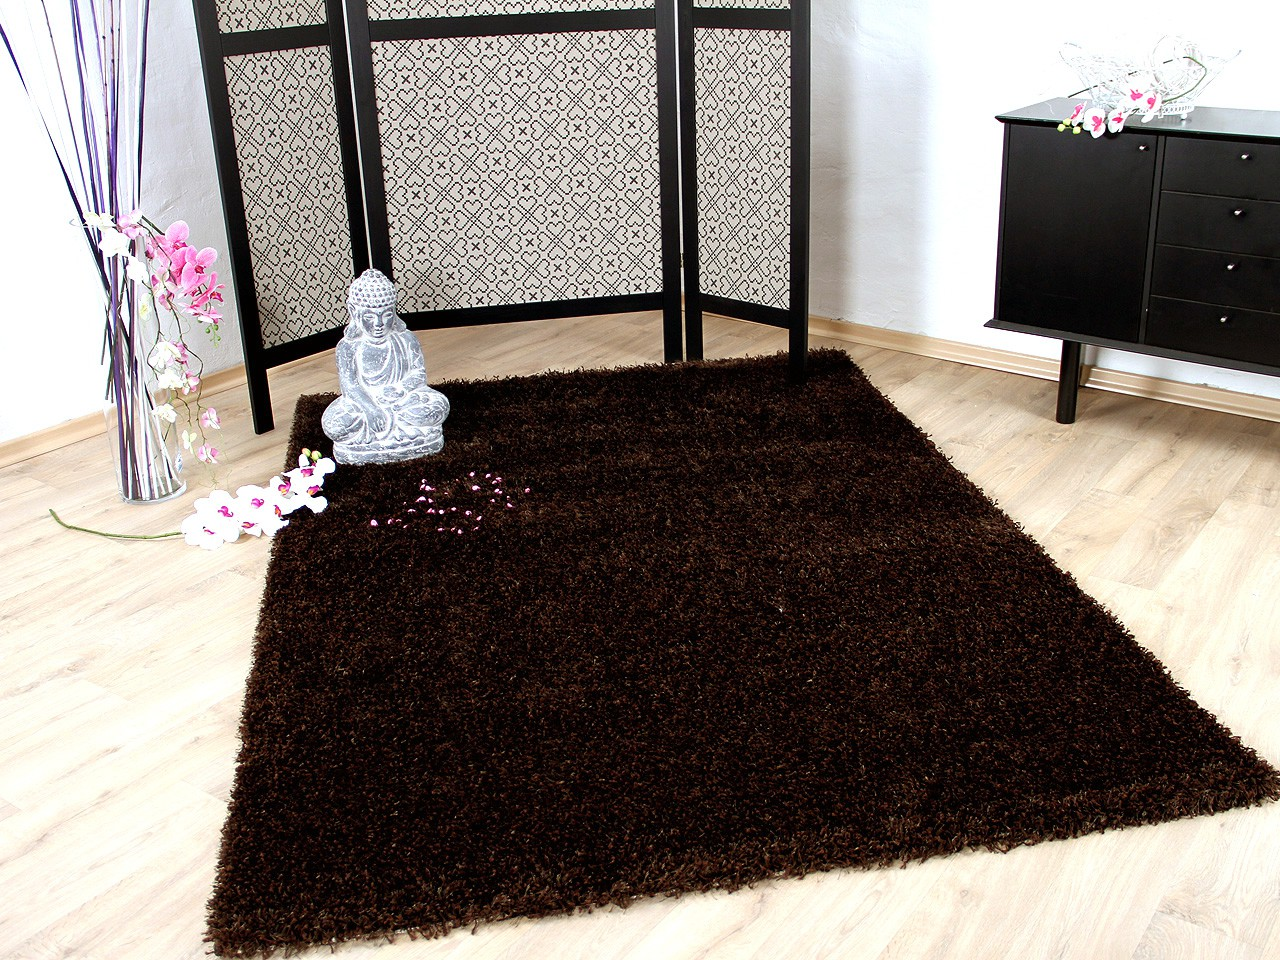 hochflor langflor shaggy teppich glamour braun teppiche hochflor langflor teppiche braun und choco. Black Bedroom Furniture Sets. Home Design Ideas